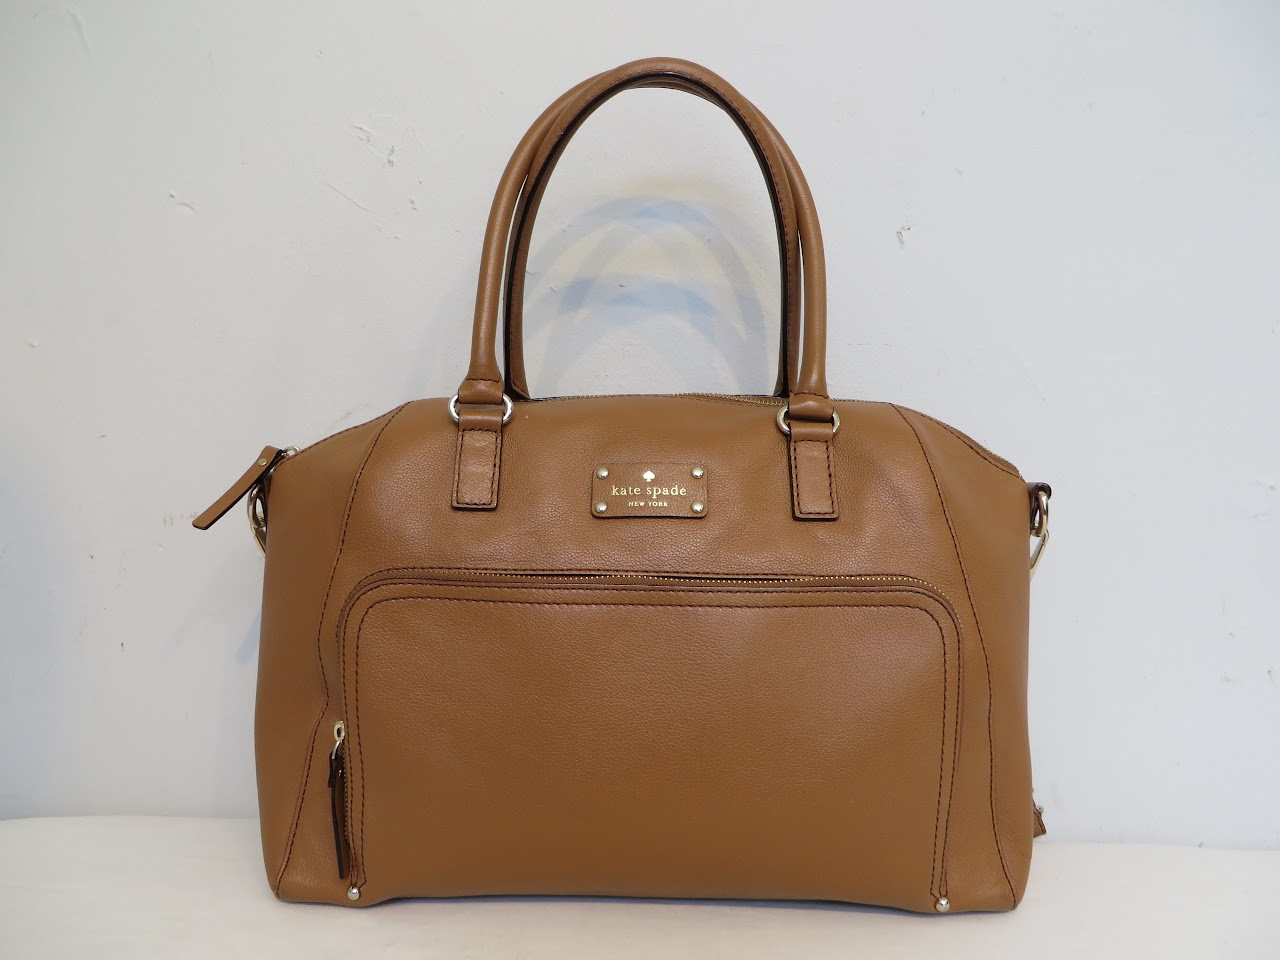 Kate Spade Tan Shoulder Bag